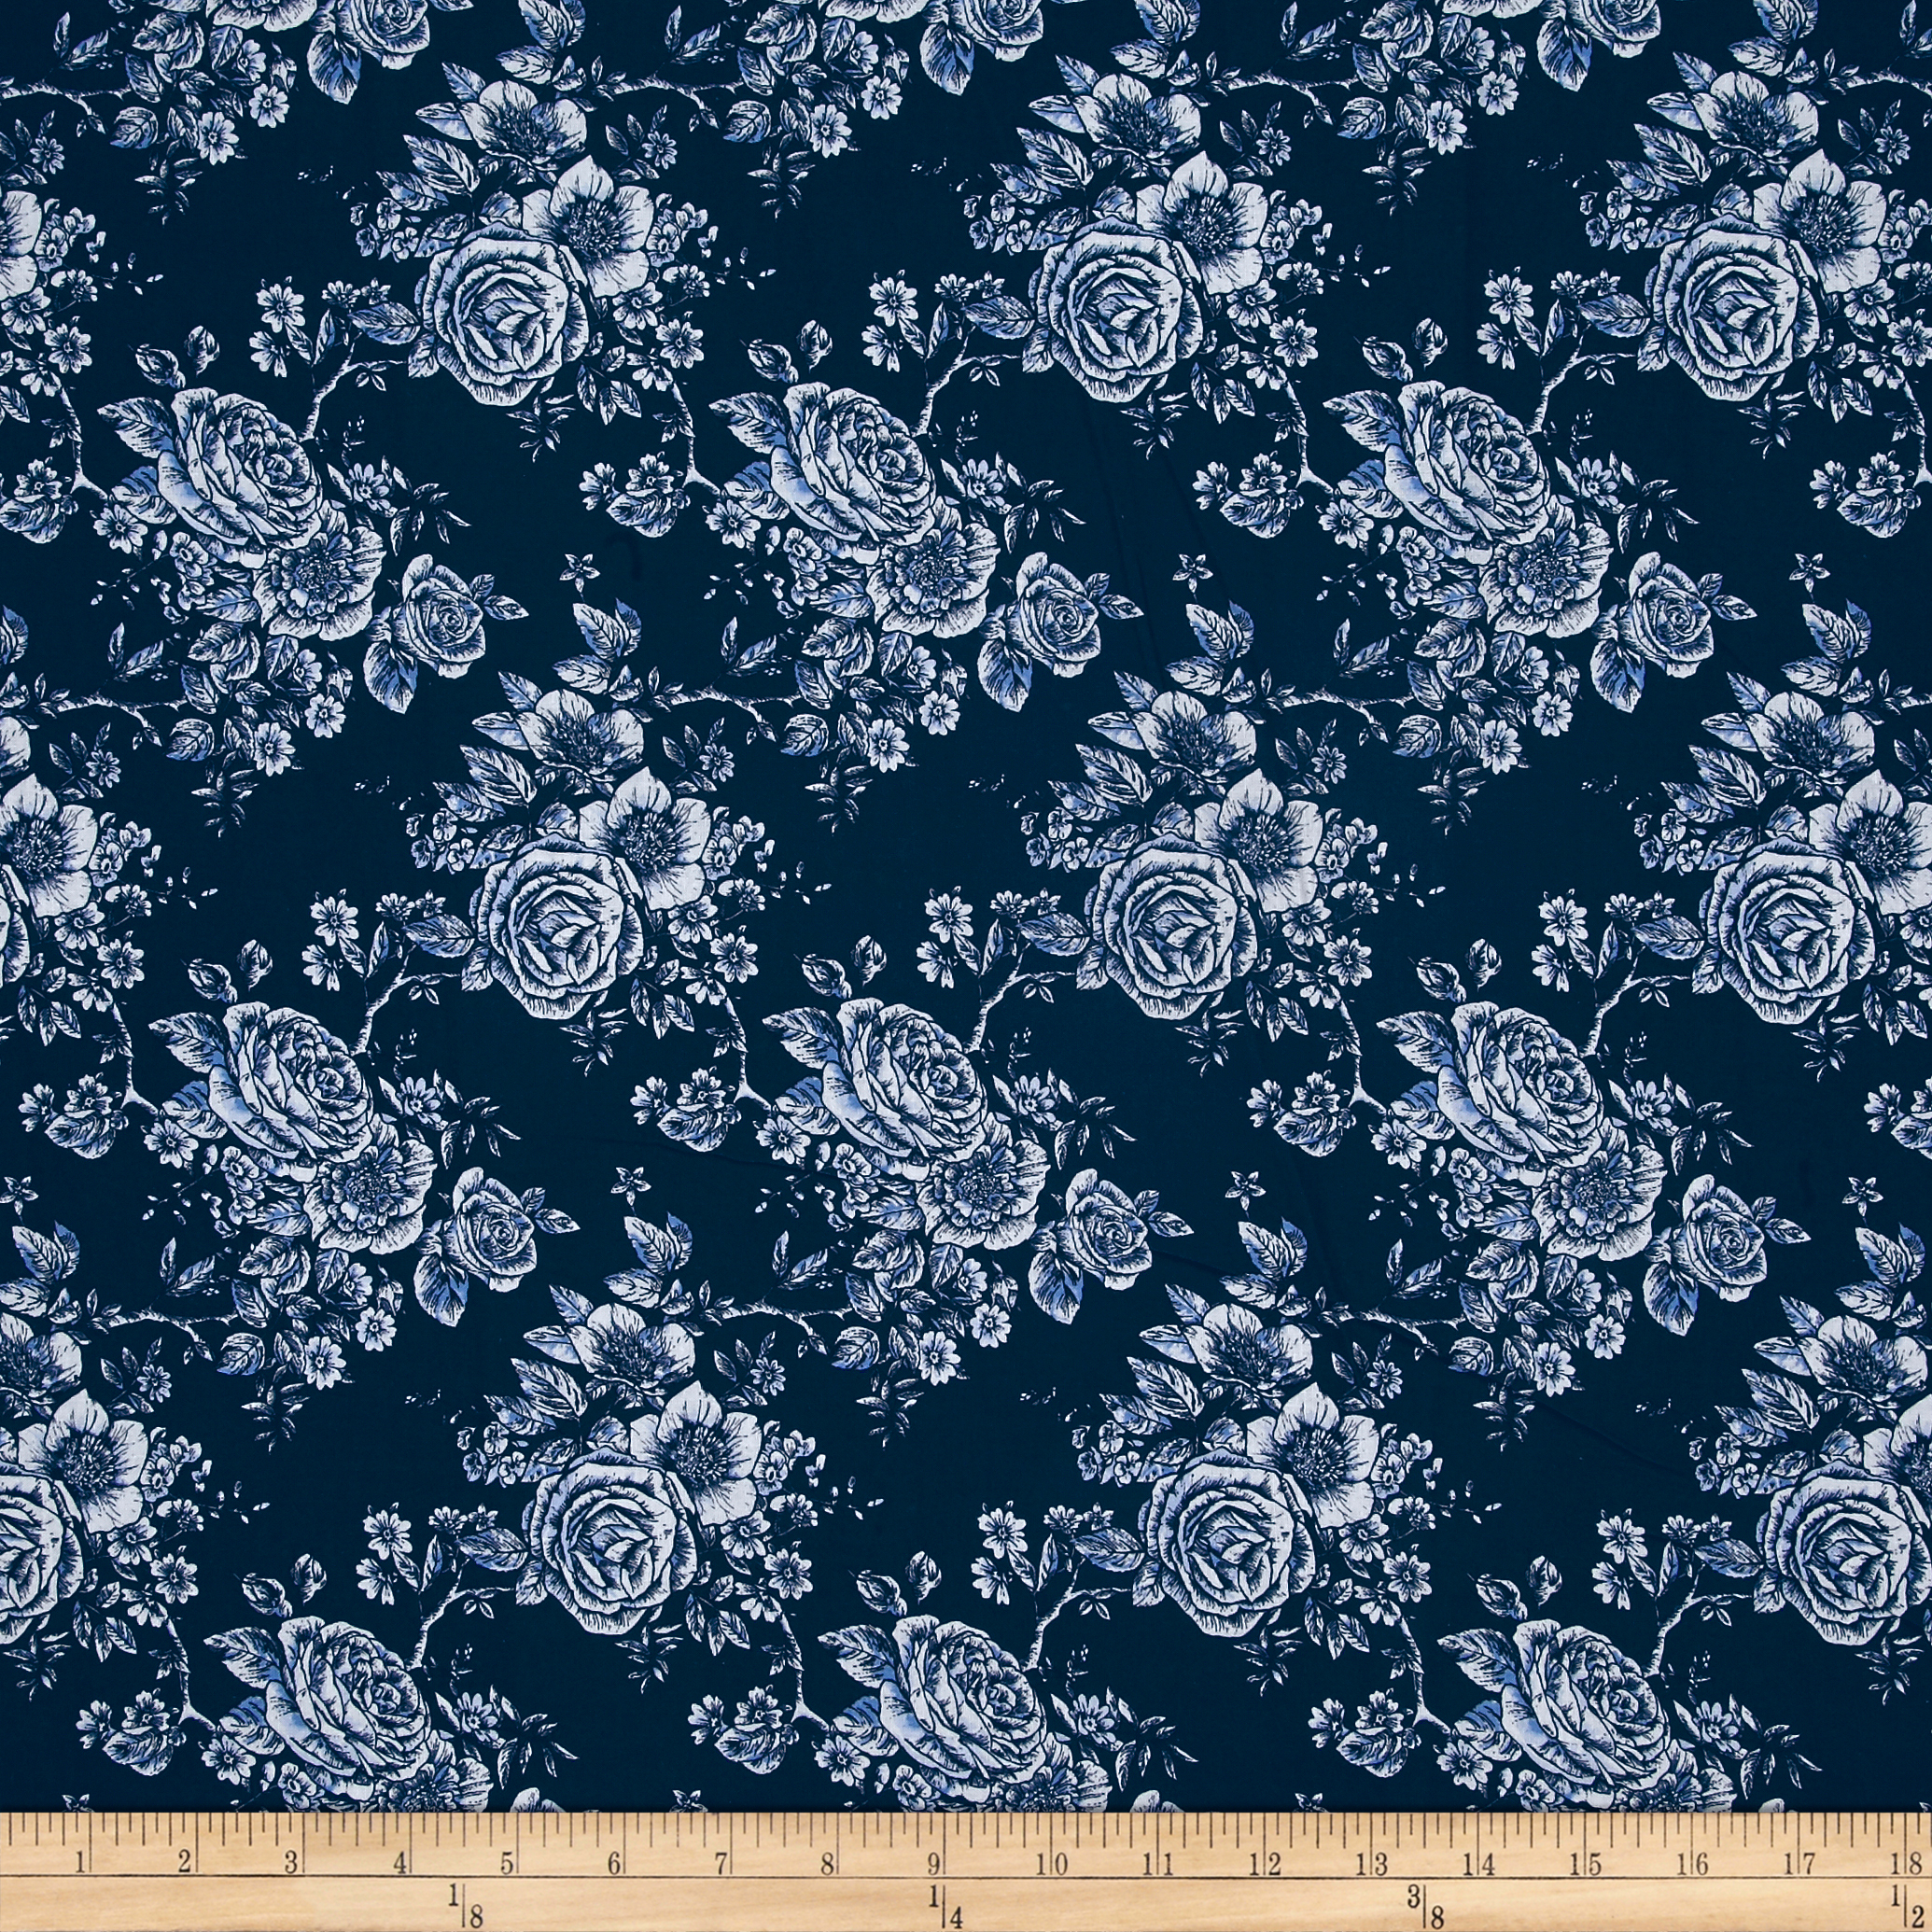 Rose Toile 108'' Wide Back Navy Fabric by Stardom Specialty in USA